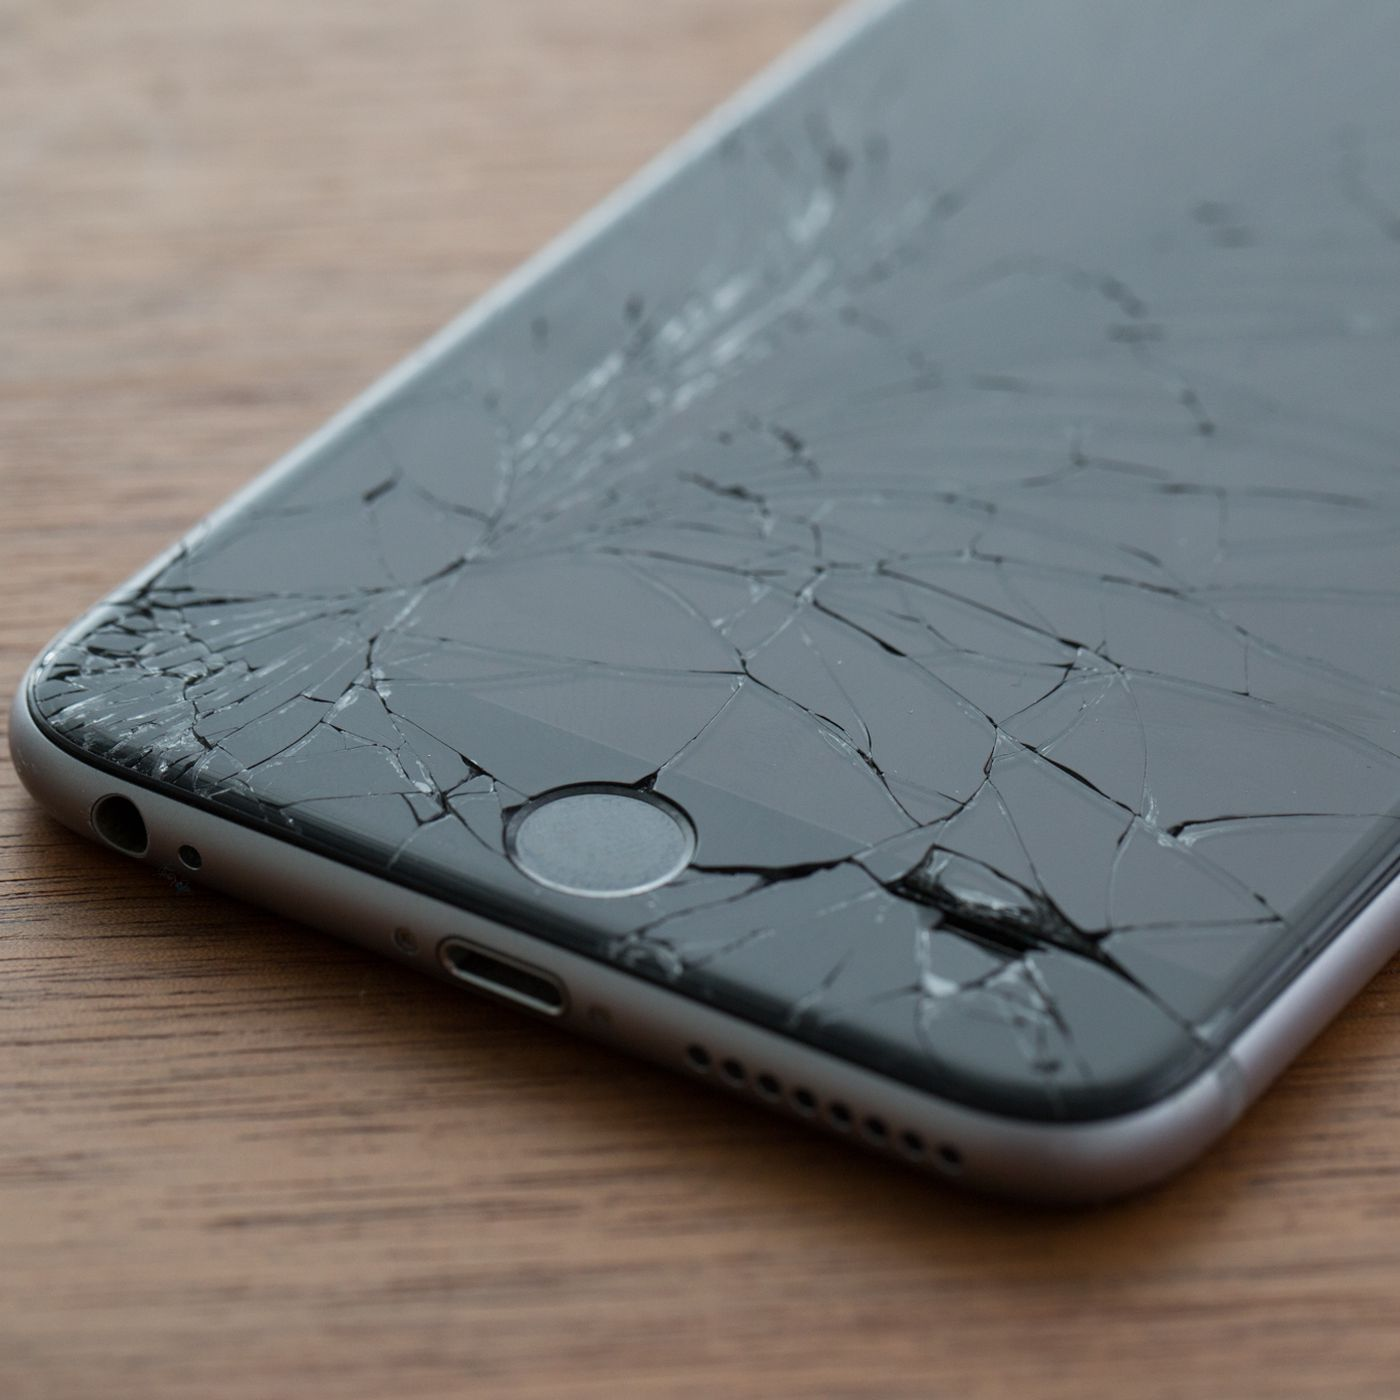 half off 7a9c8 2cbdb Apple quietly made it cheaper to replace a cracked iPhone screen ...